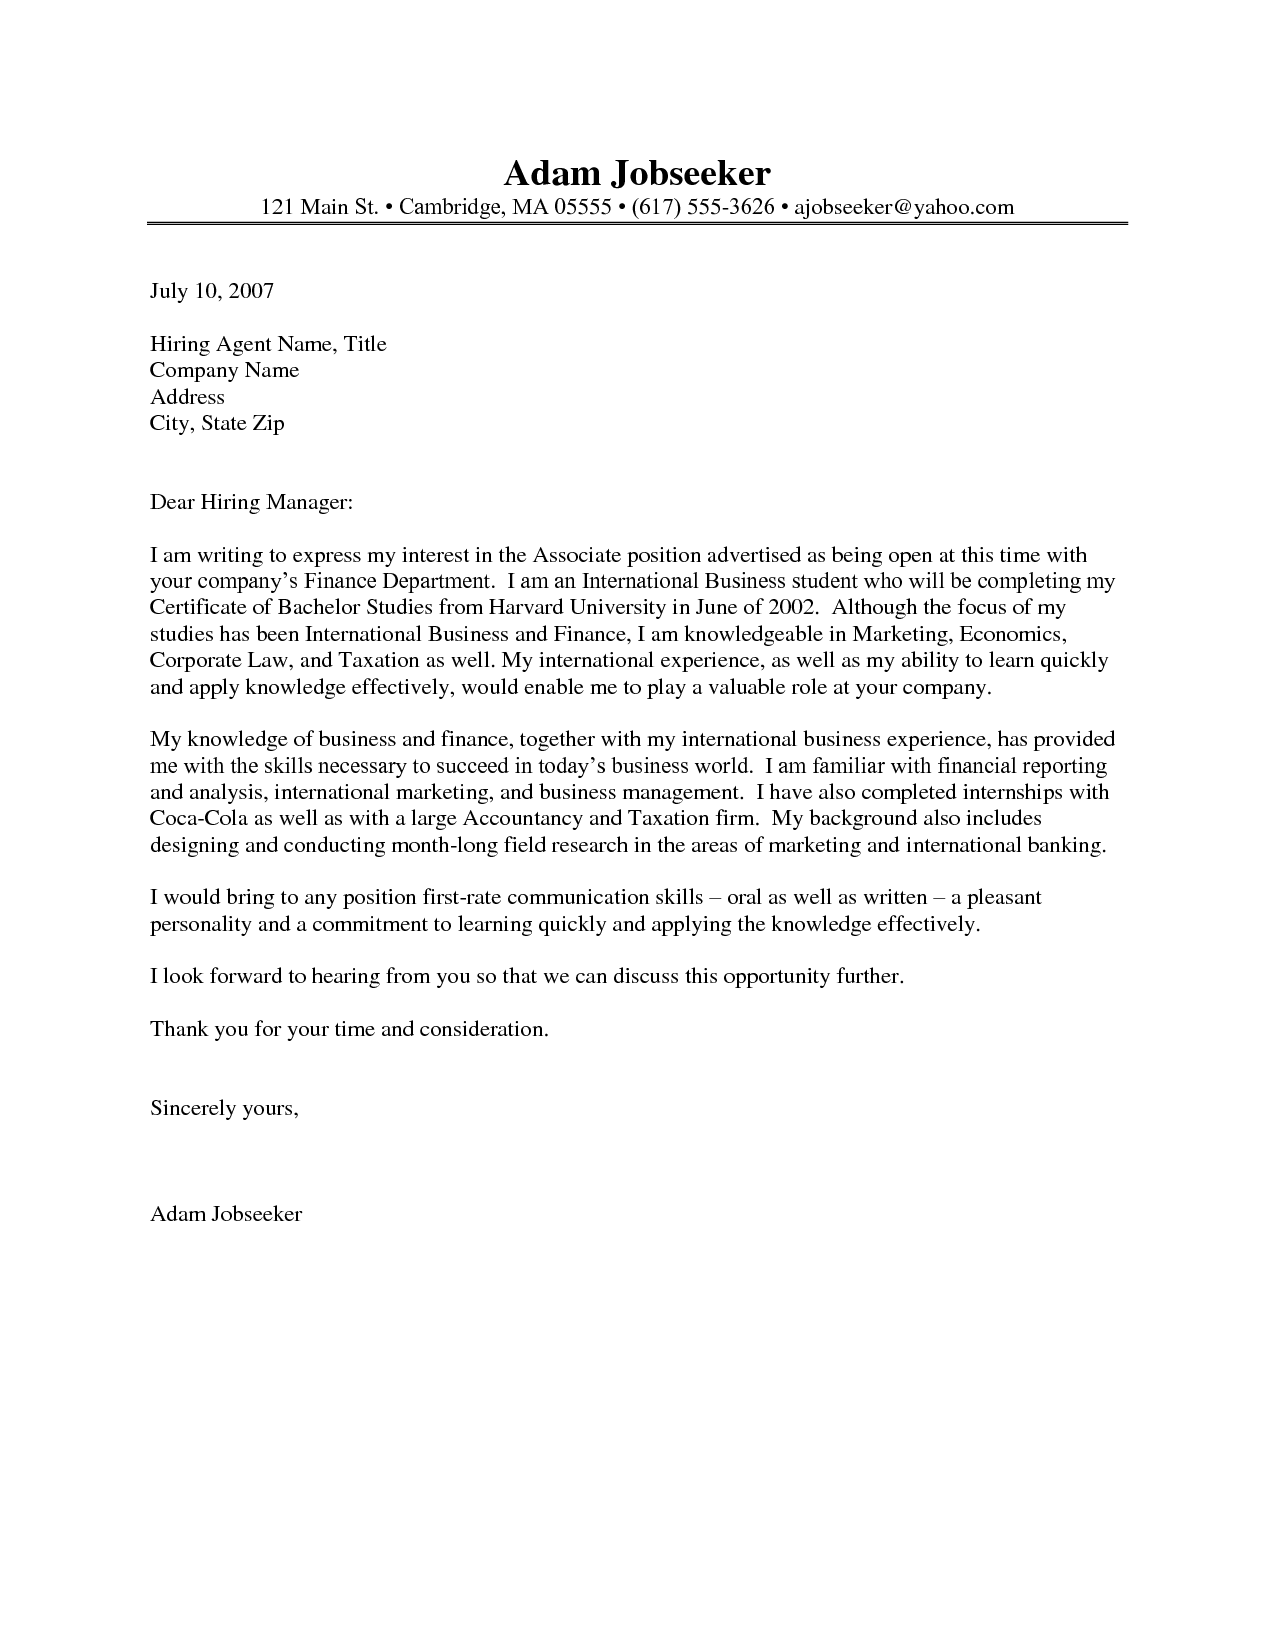 Recommendation Letter For Internship Internship Cover Letter Format